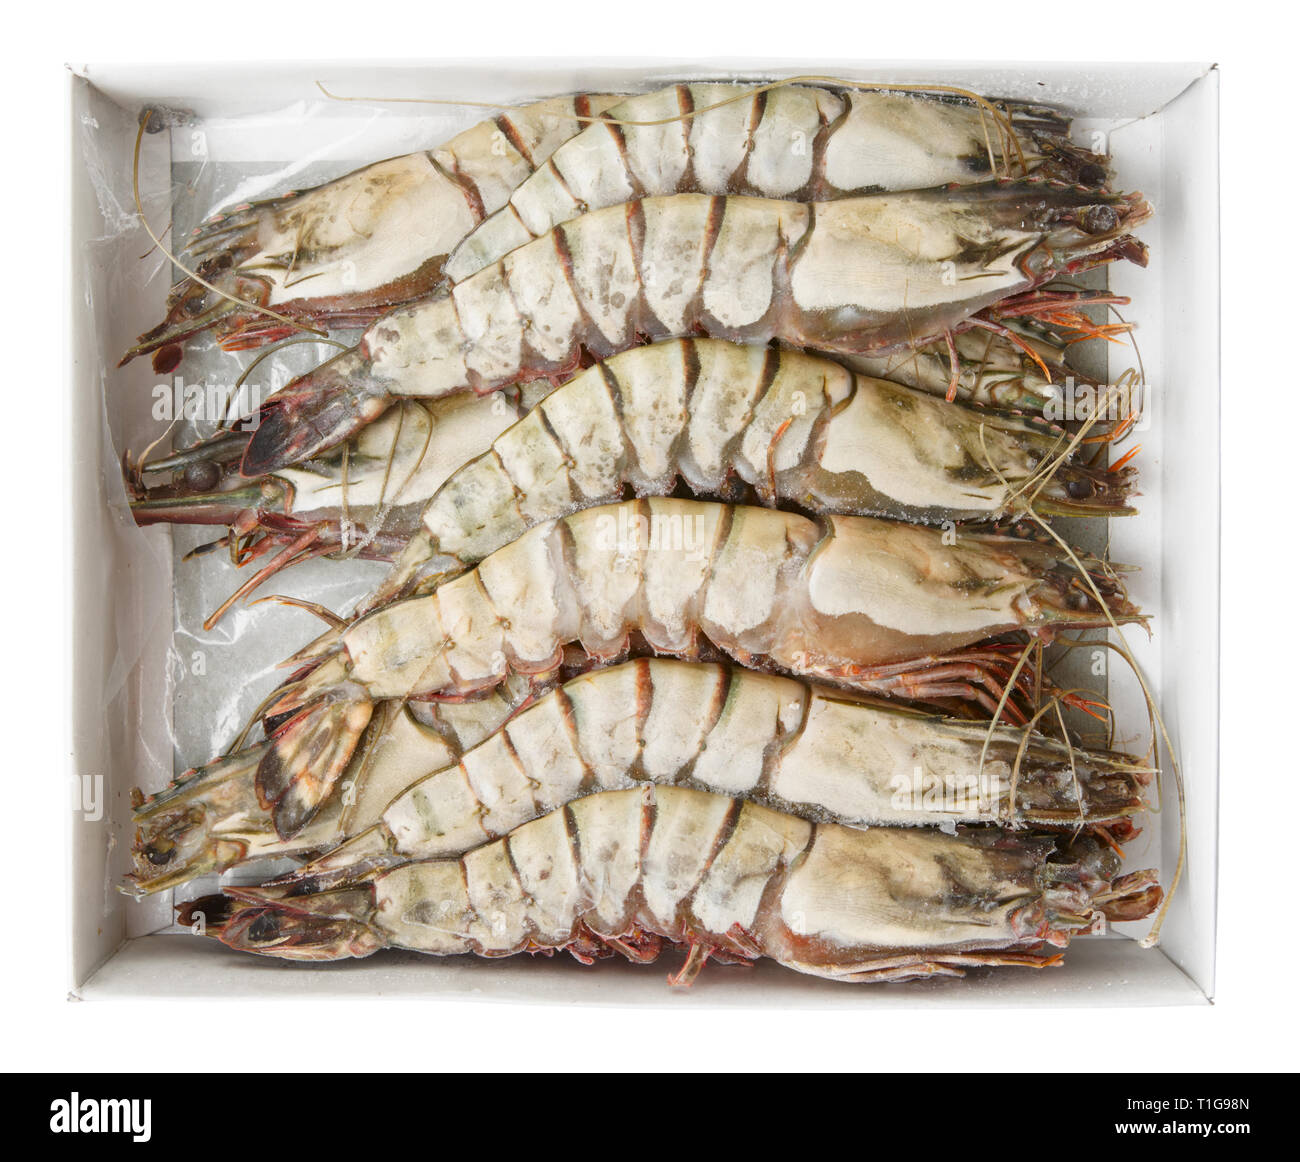 Giant prawns in retail pack, isolated on white with clipping path - Stock Image